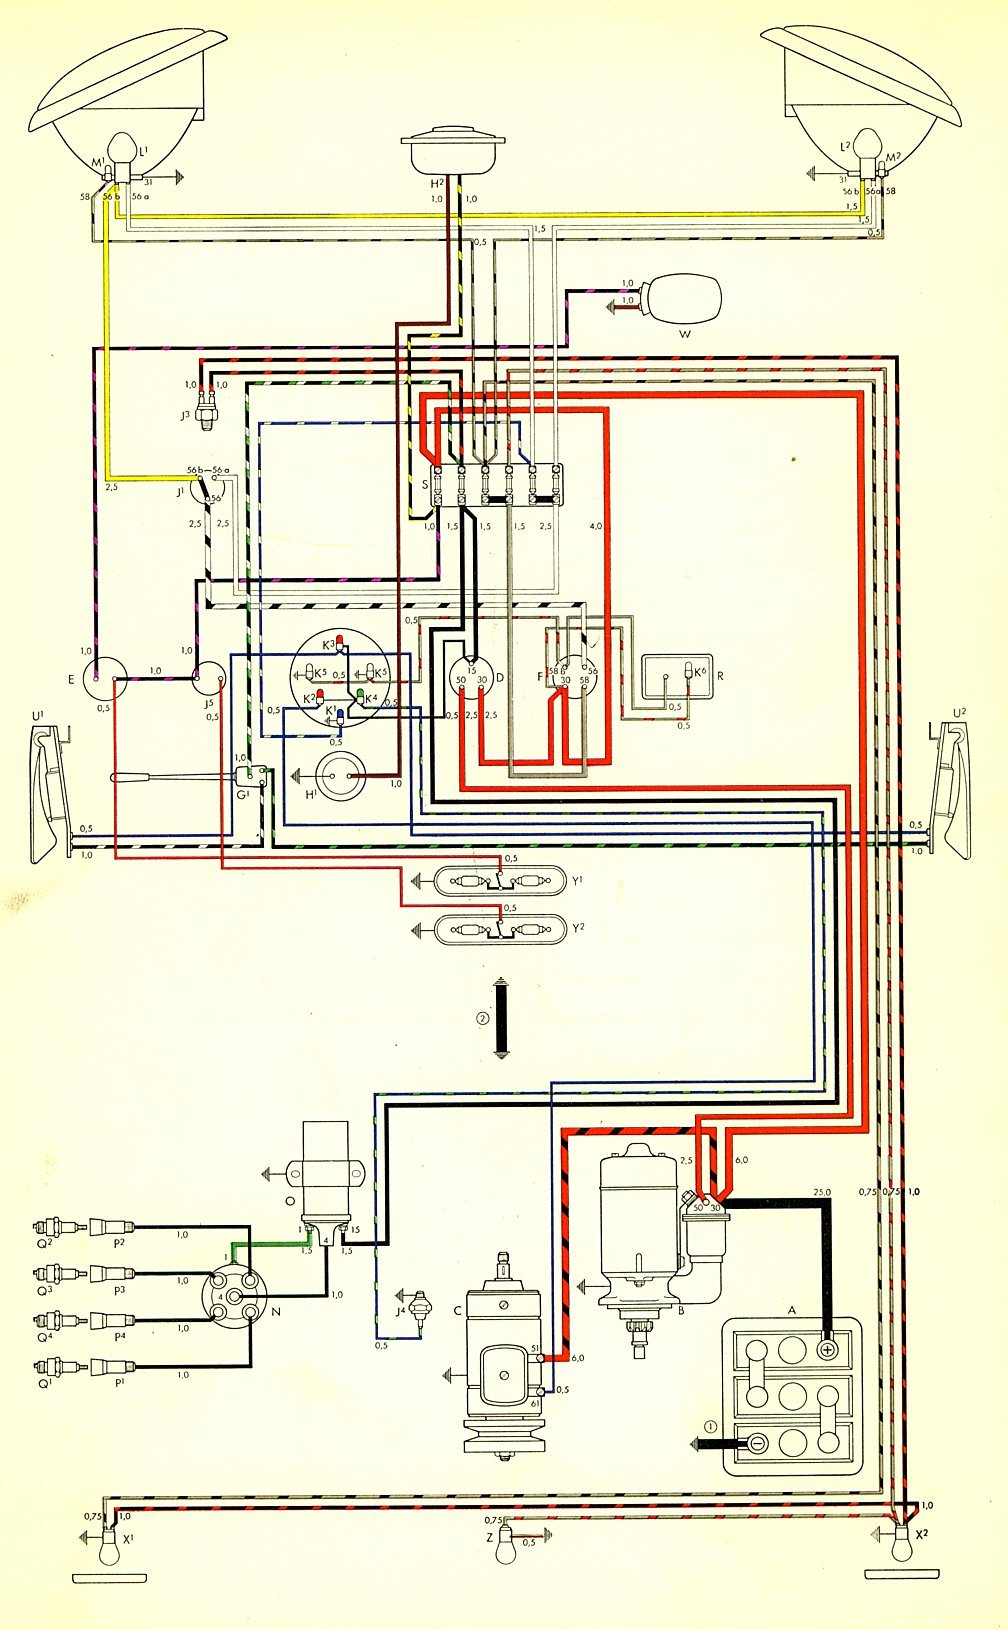 bus_59 wiring diagram for 1971 vw bus readingrat net 1978 vw bus fuse box diagram at fashall.co